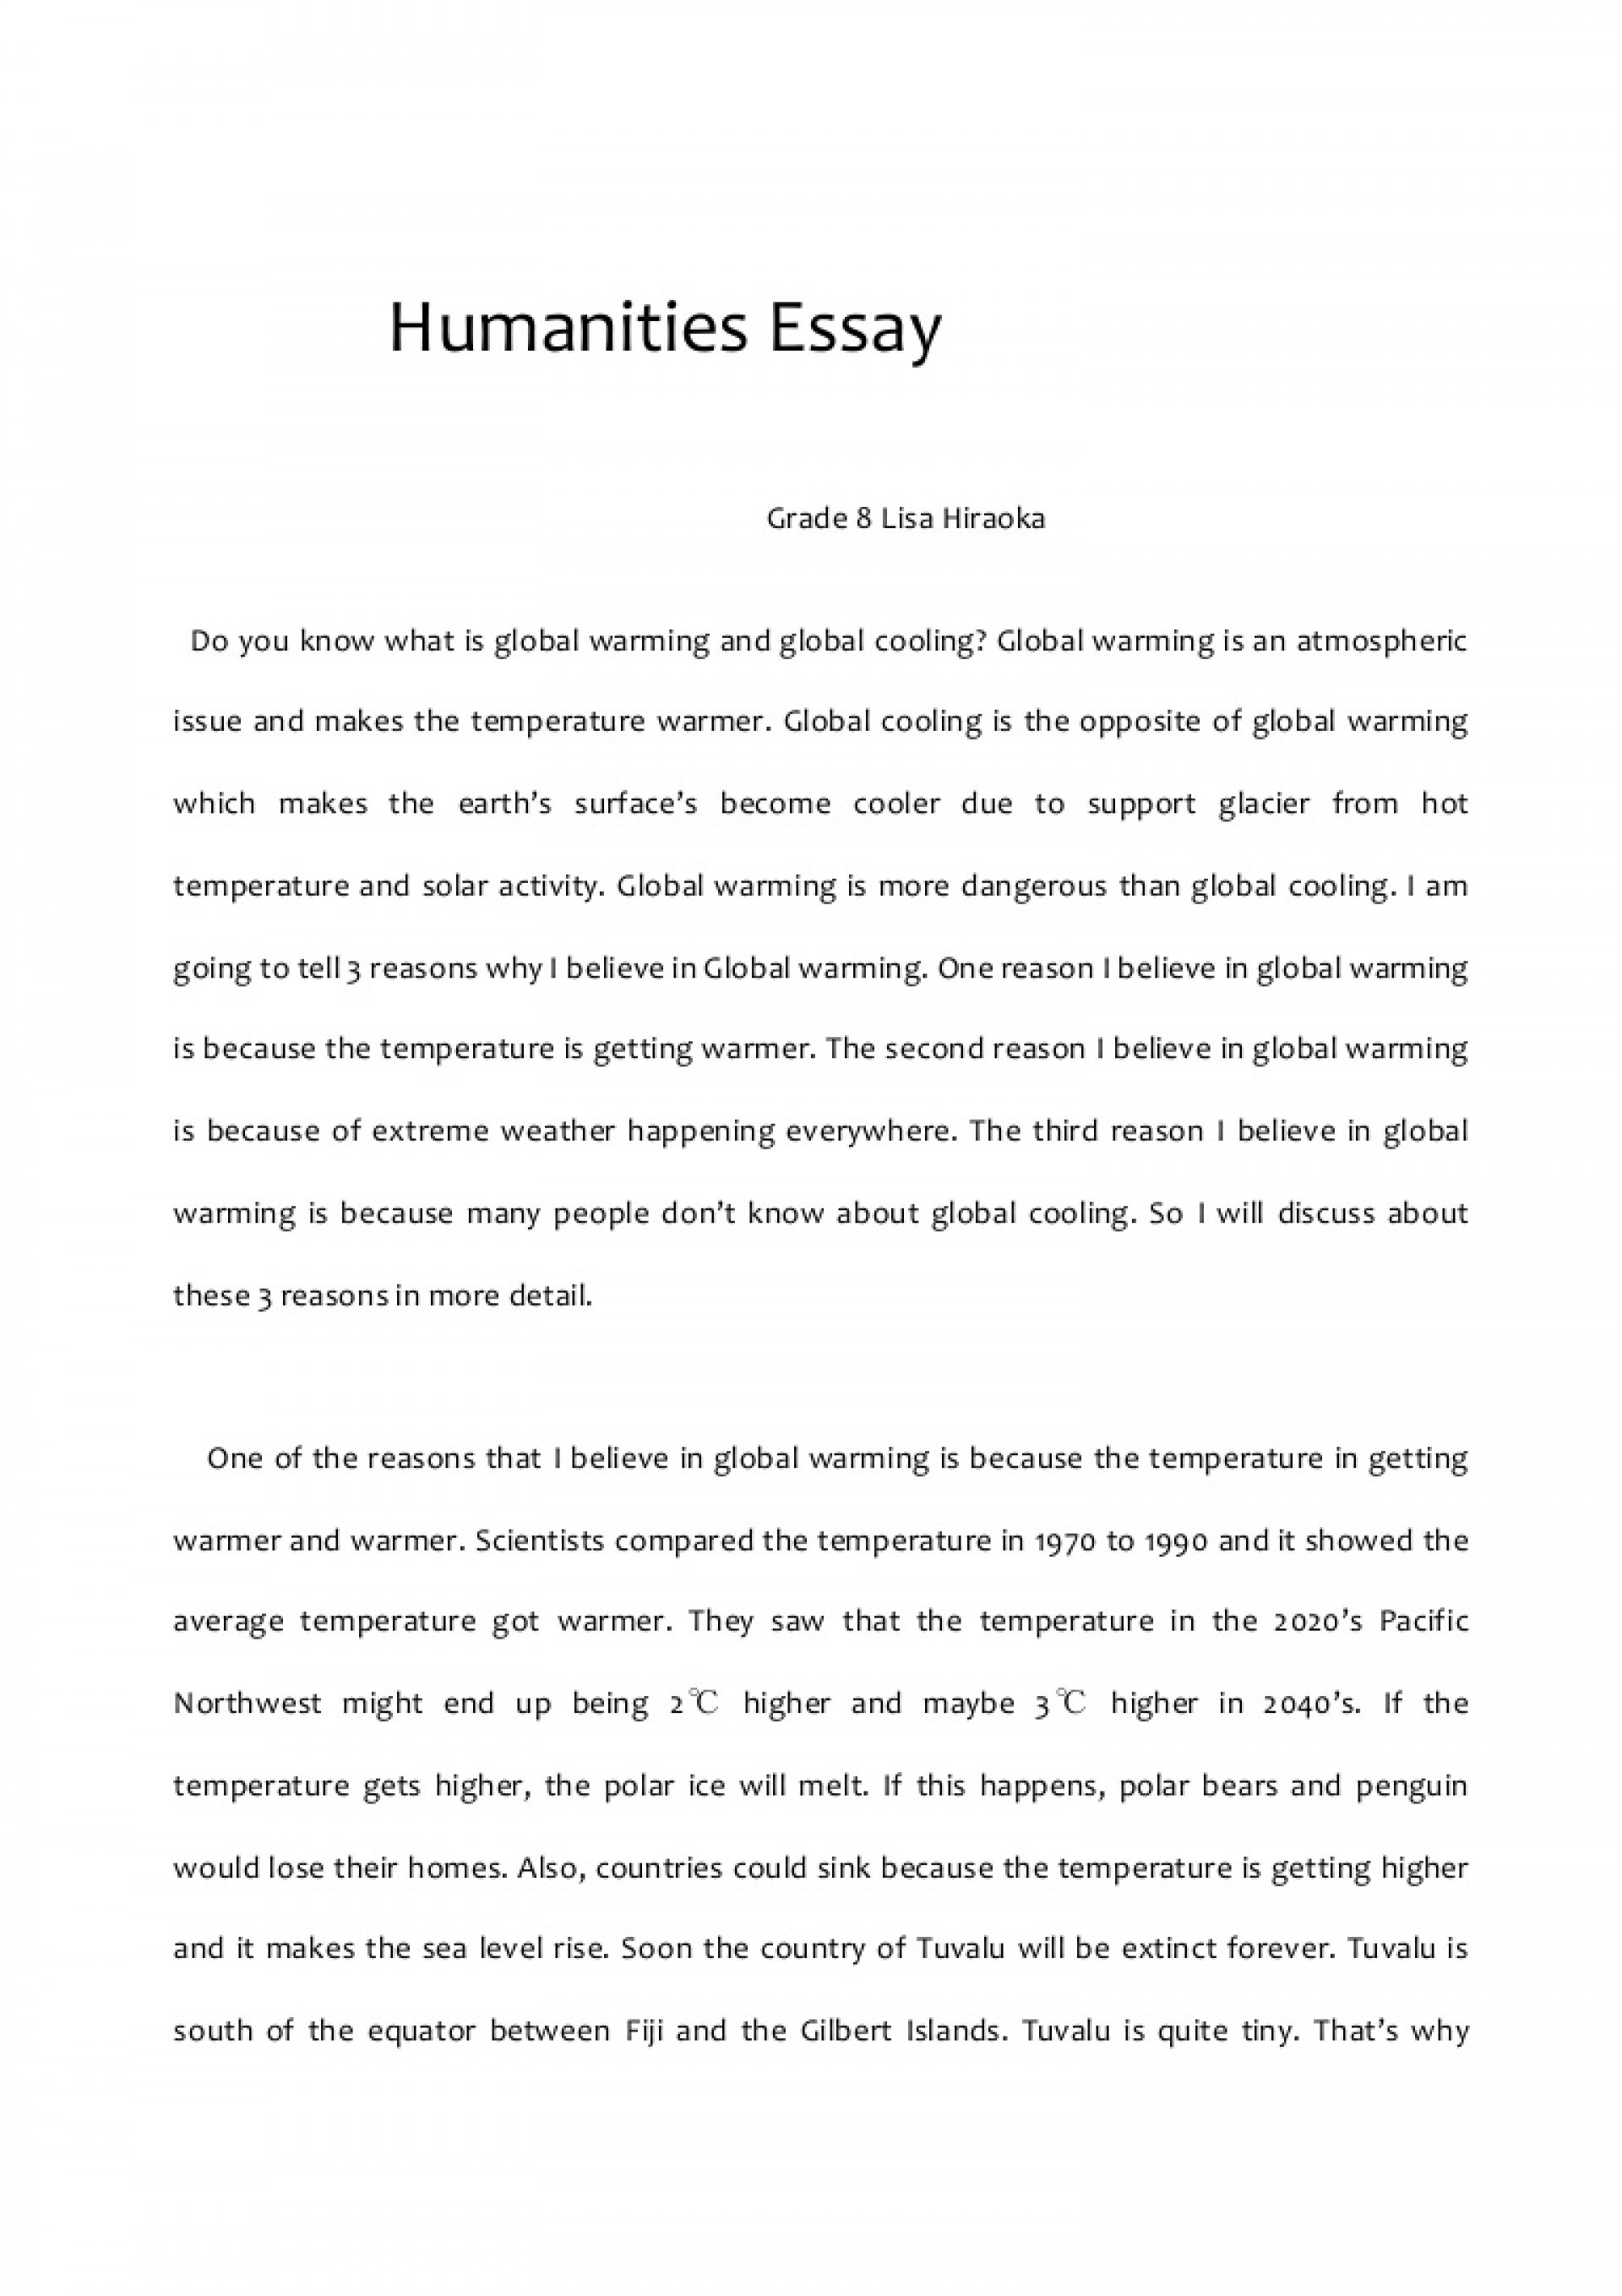 011 I Believe Essay Topics Best Narrative This Samples Humanitiesessay Phpapp02 Thumbn Good Template Impressive Example Topic Ideas Examples College 1920